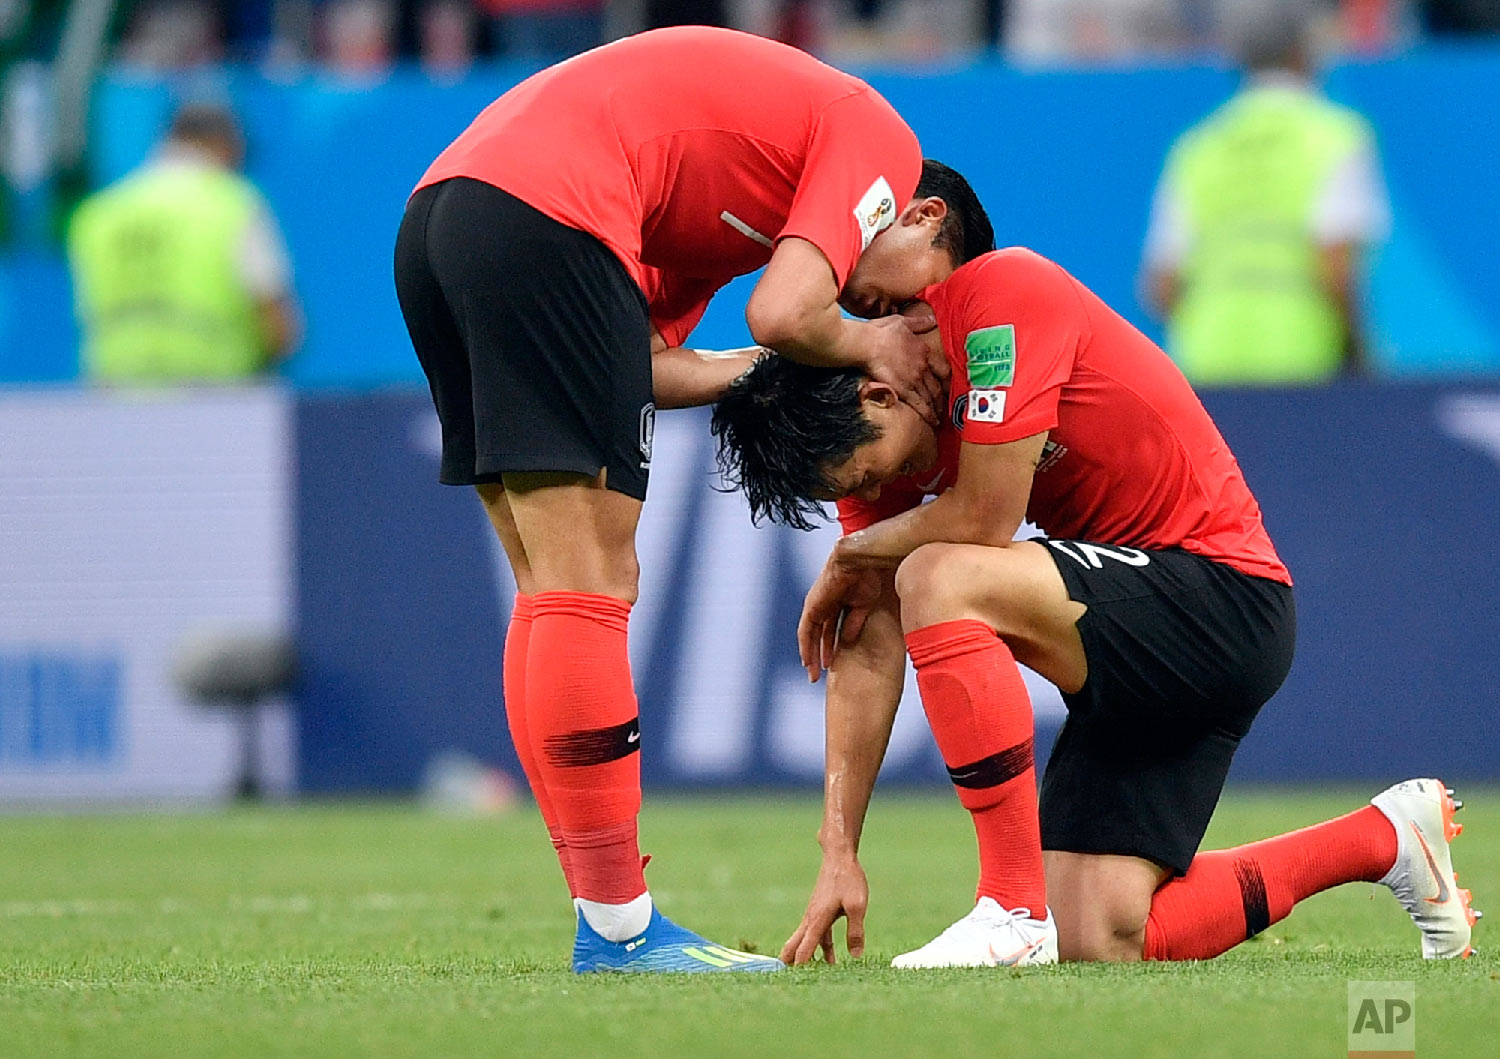 South Korea players console each others at the end of the group F match between Mexico and South Korea at the 2018 soccer World Cup in the Rostov Arena in Rostov-on-Don, Russia, Saturday, June 23, 2018. Mexico won 2-1. (AP Photo/Martin Meissner)